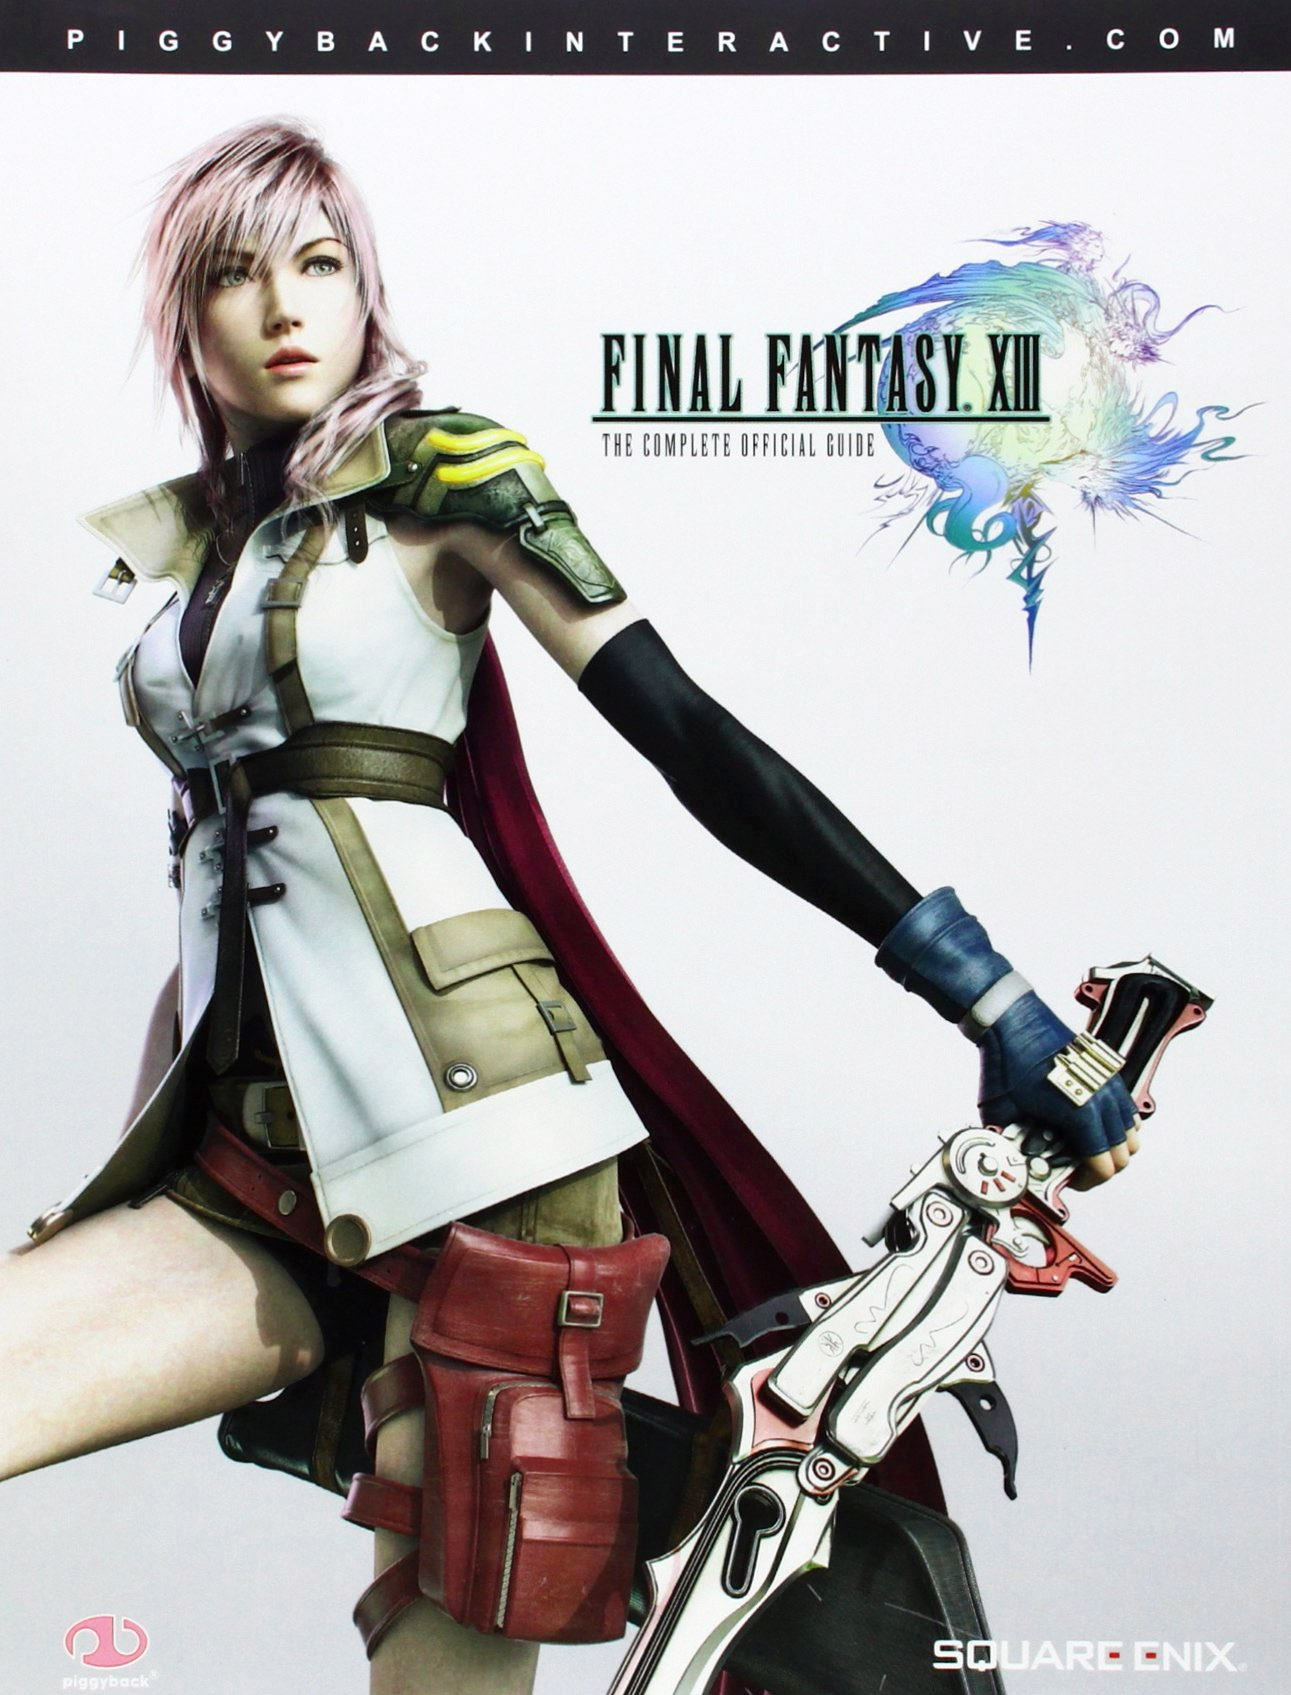 Final Fantasy XIII - The Complete Official Guide